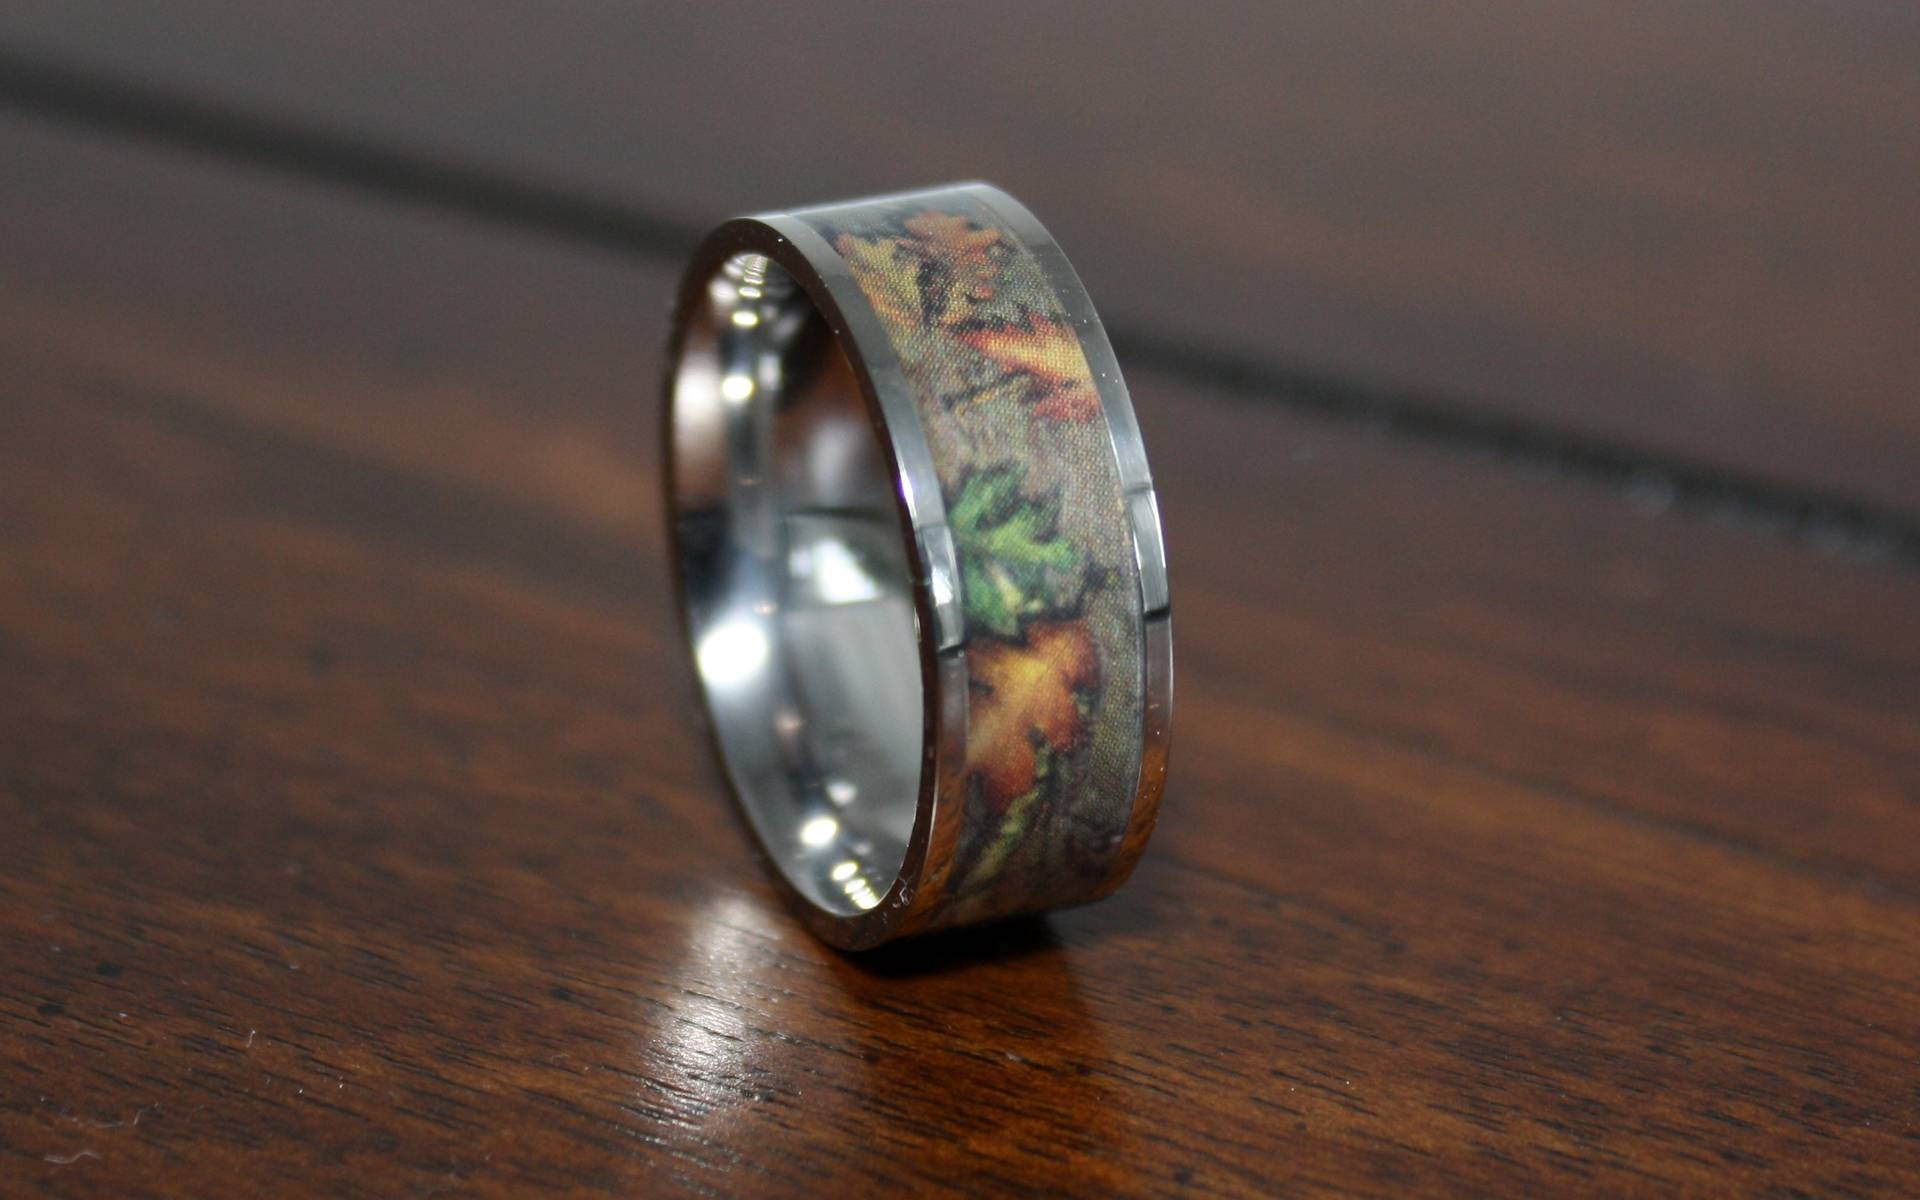 Camo Wedding Rings: Unique Wedding Ring Inspiration | Wedding Ideas Regarding Camouflage Wedding Bands For Him (View 4 of 15)